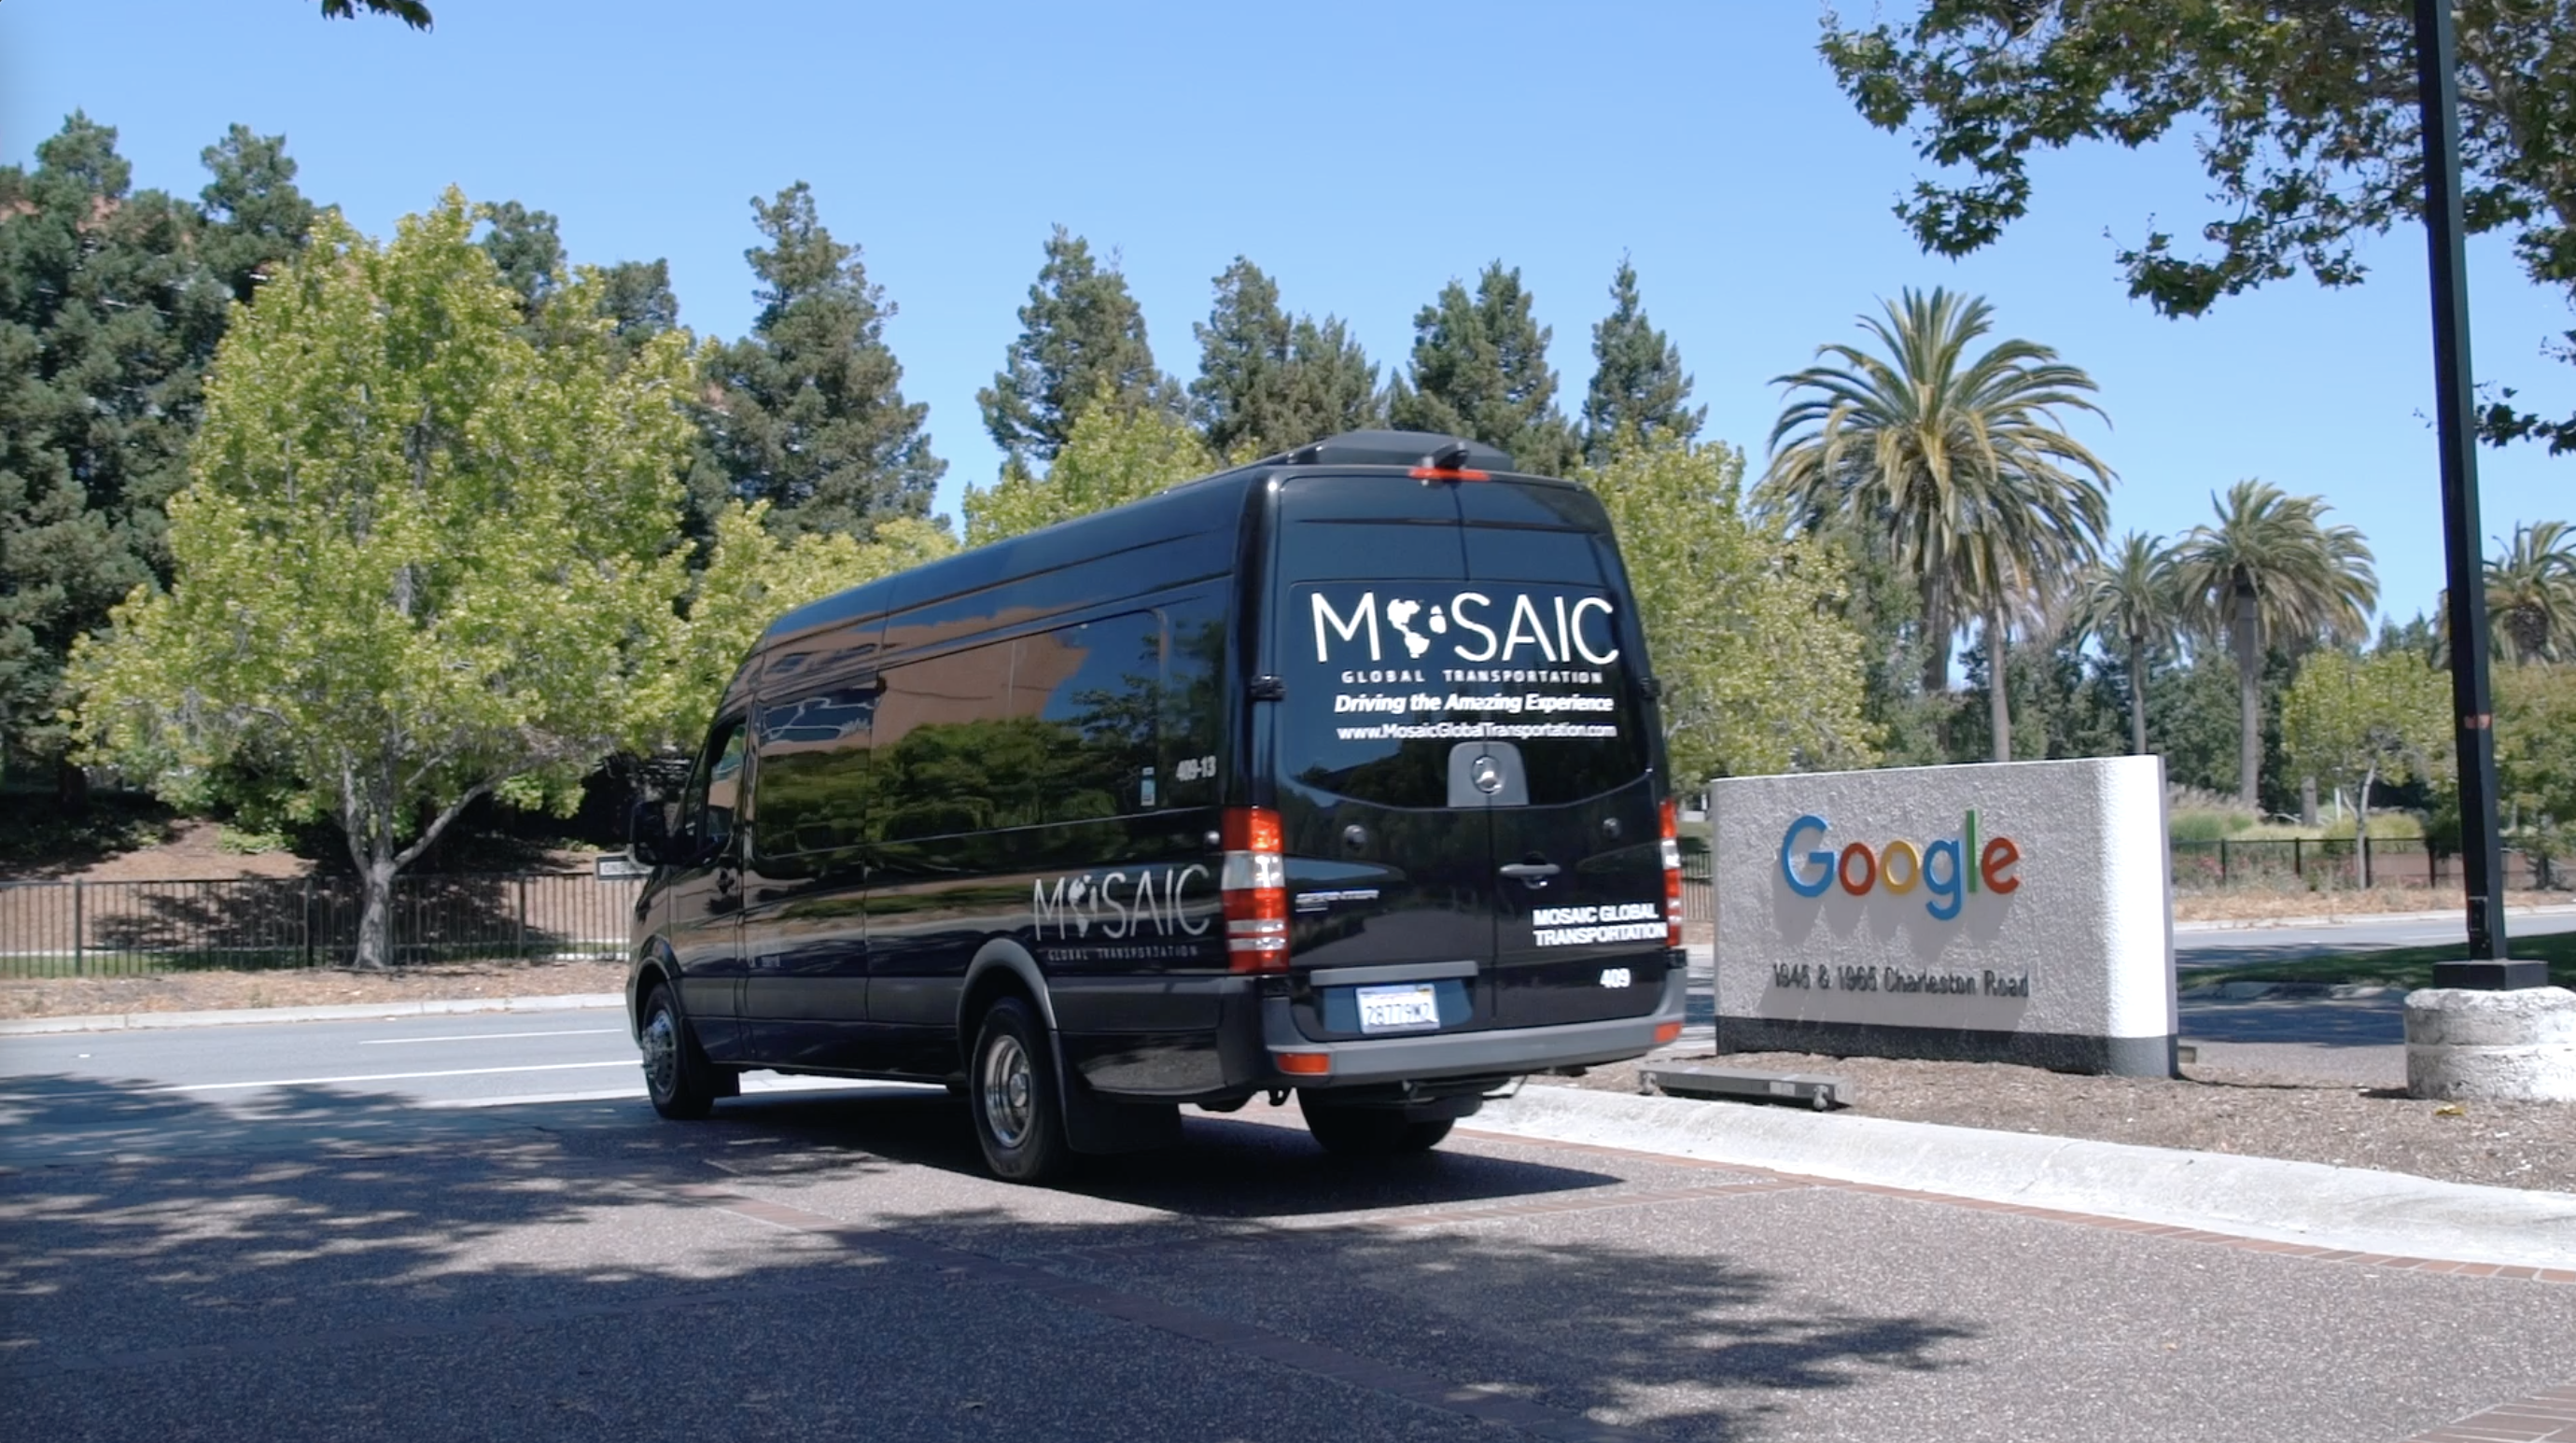 Mosaic Global Transportation van in front of a Google business sign